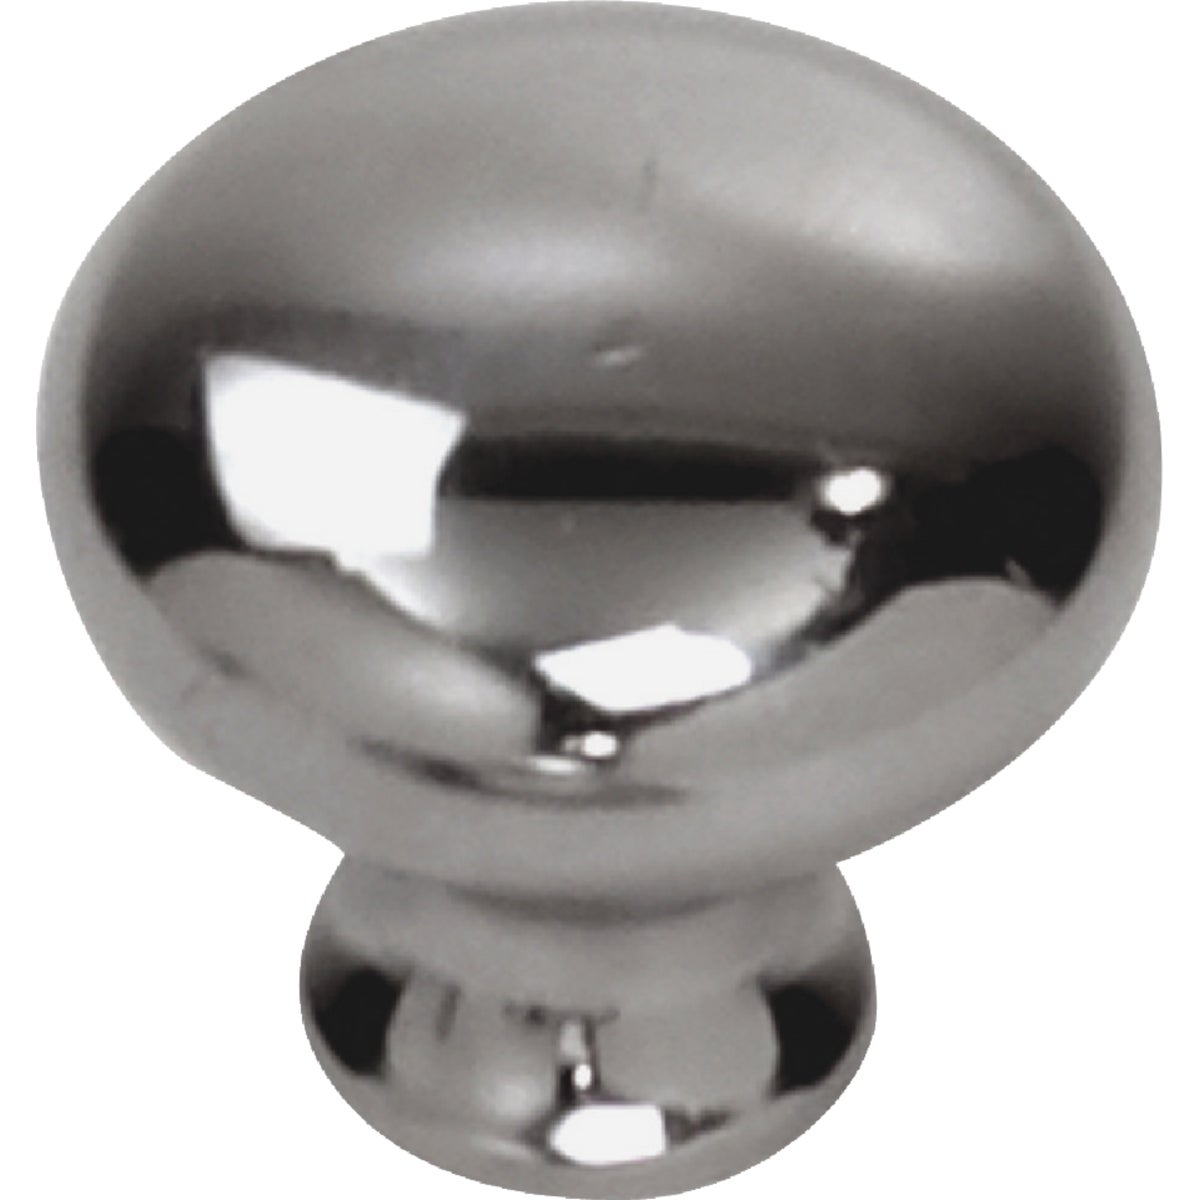 "1-1/4"" PLSHD CHROME KNOB - 54426 by Laurey Co"